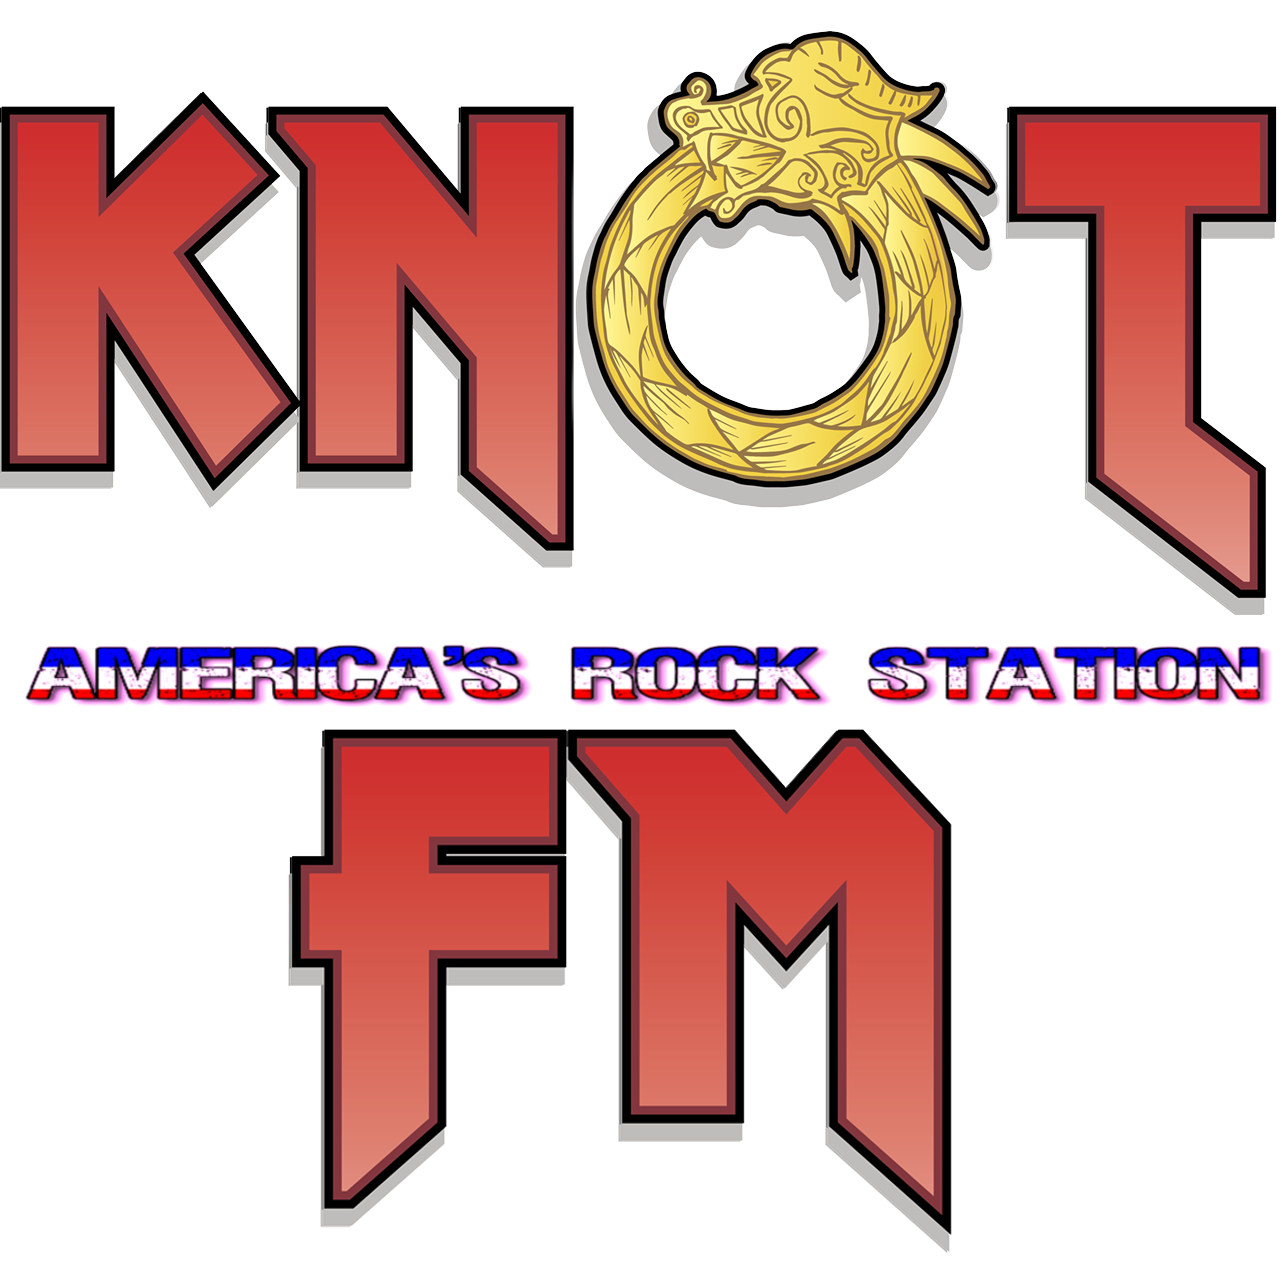 KNOT FM America's Rock Station